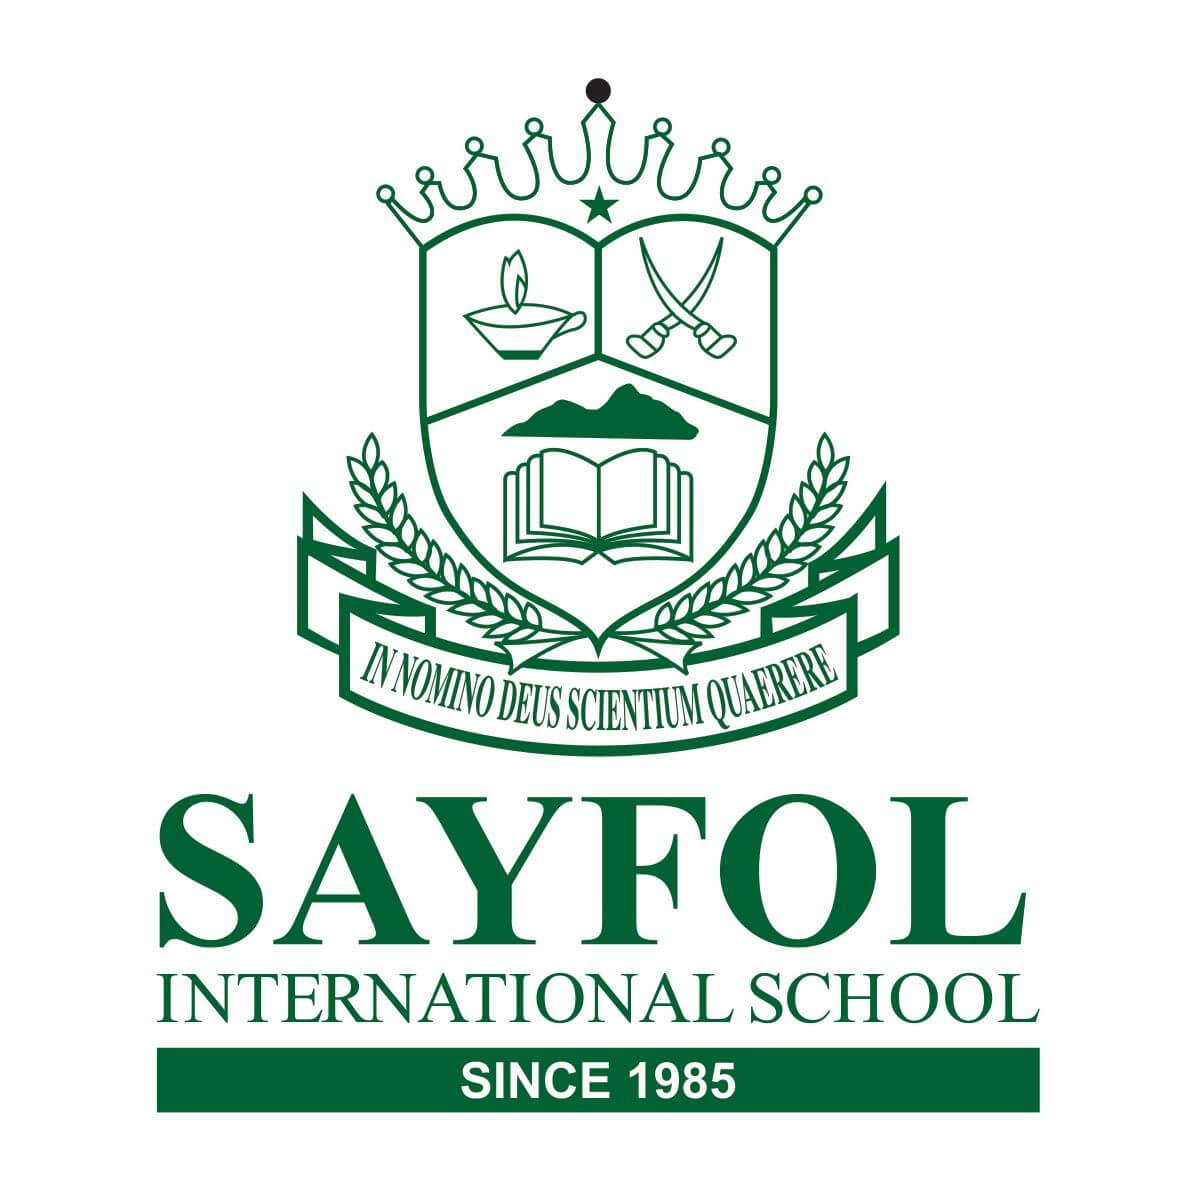 Sayfol International School